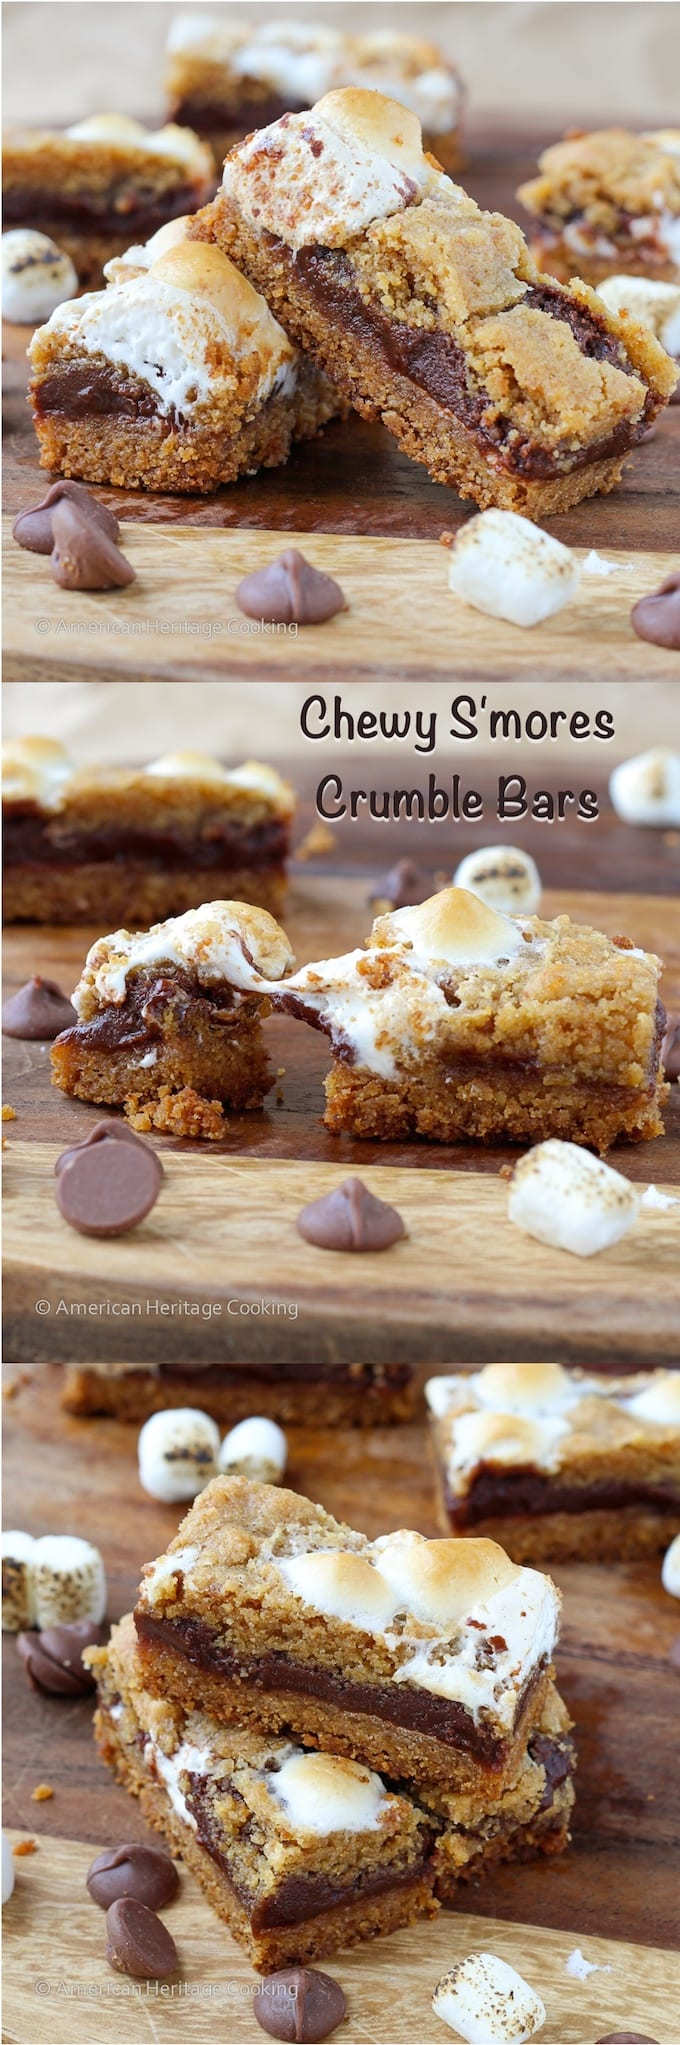 Chewy S'mores Crumble Bars